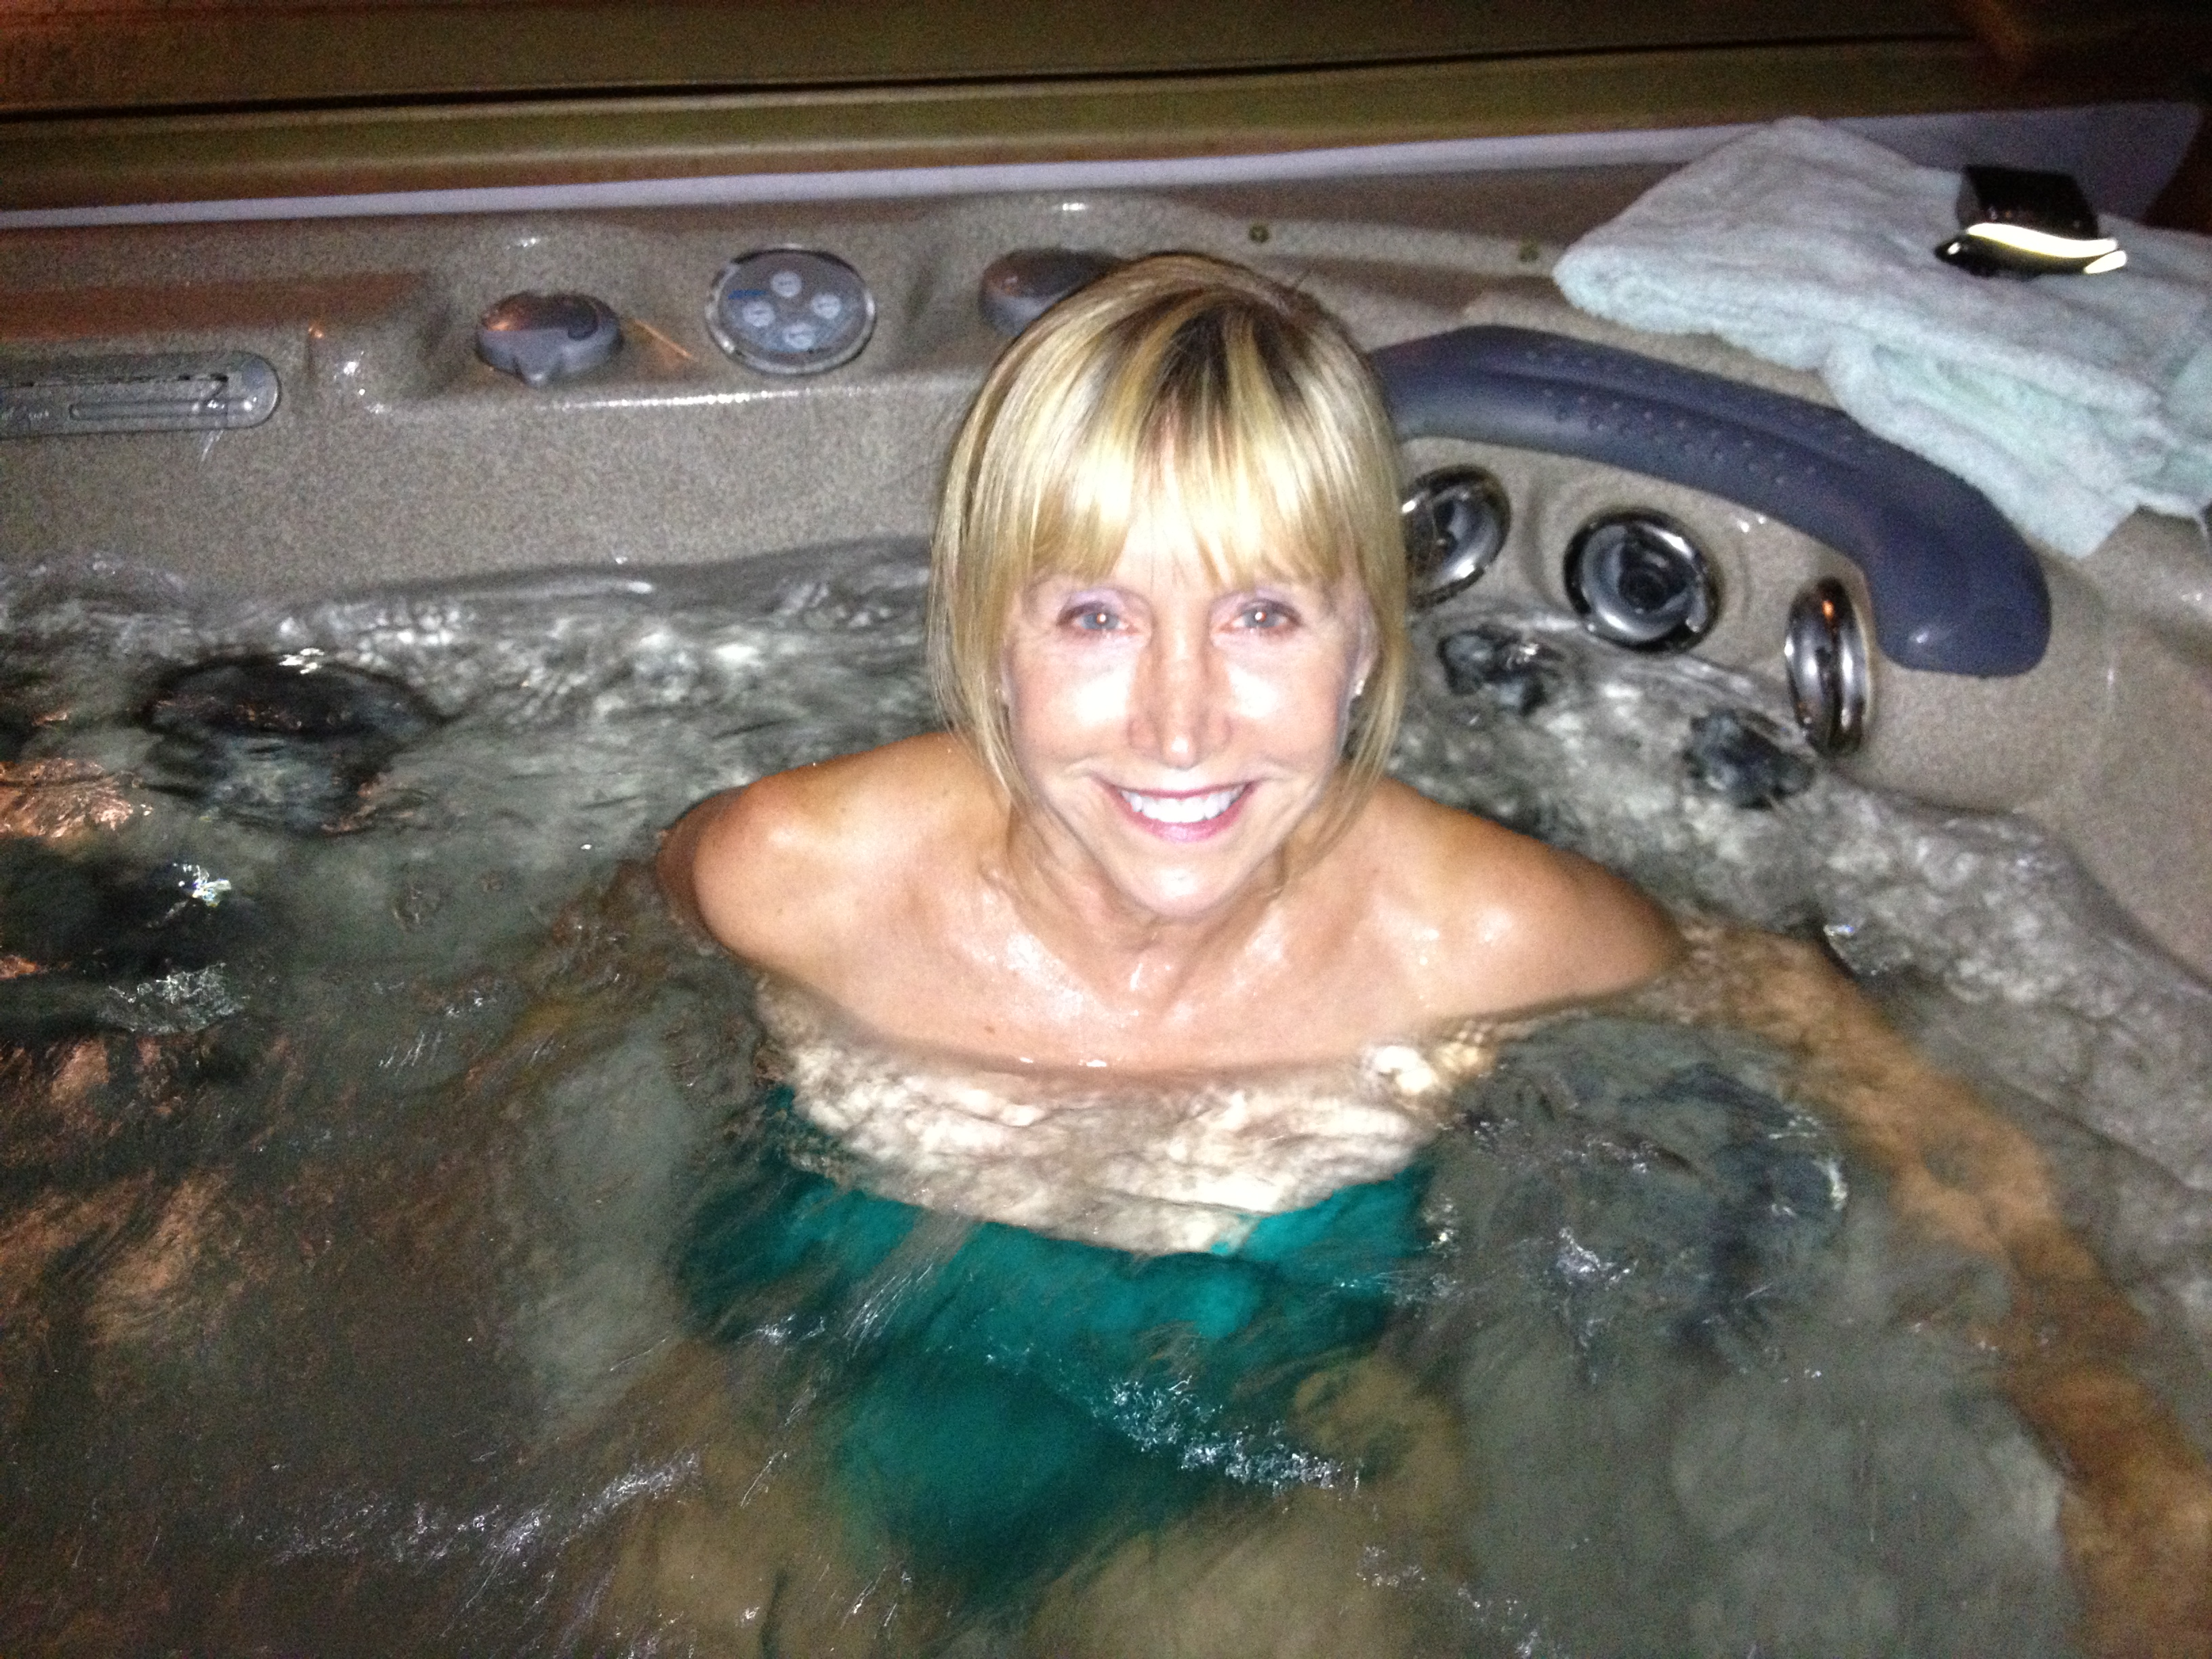 Blonde woman in hot tub